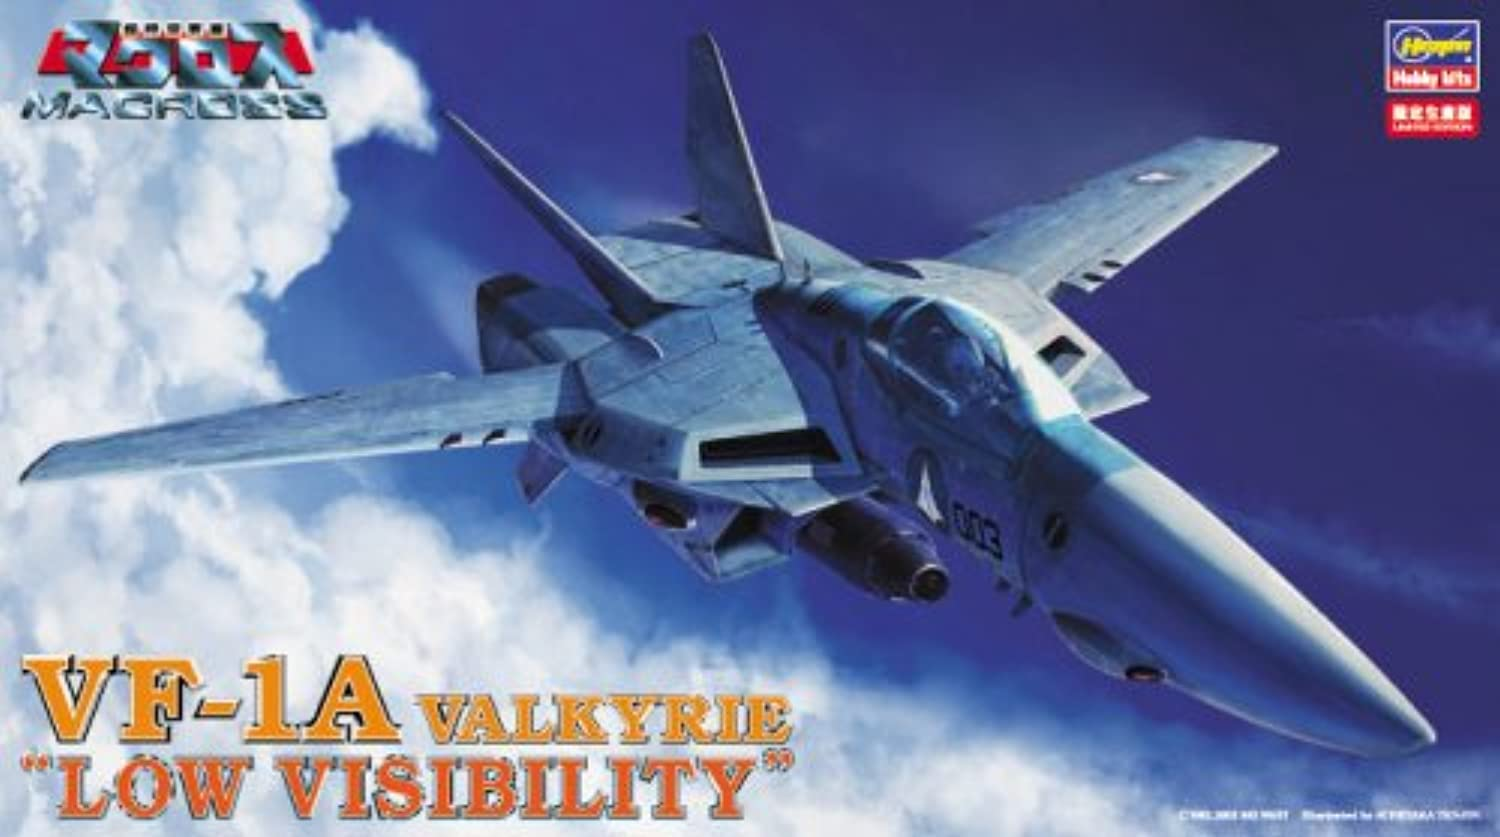 VF-1A Valkyrie Low Visibility (Plastic model) Hasegawa Macross Macross 1 72